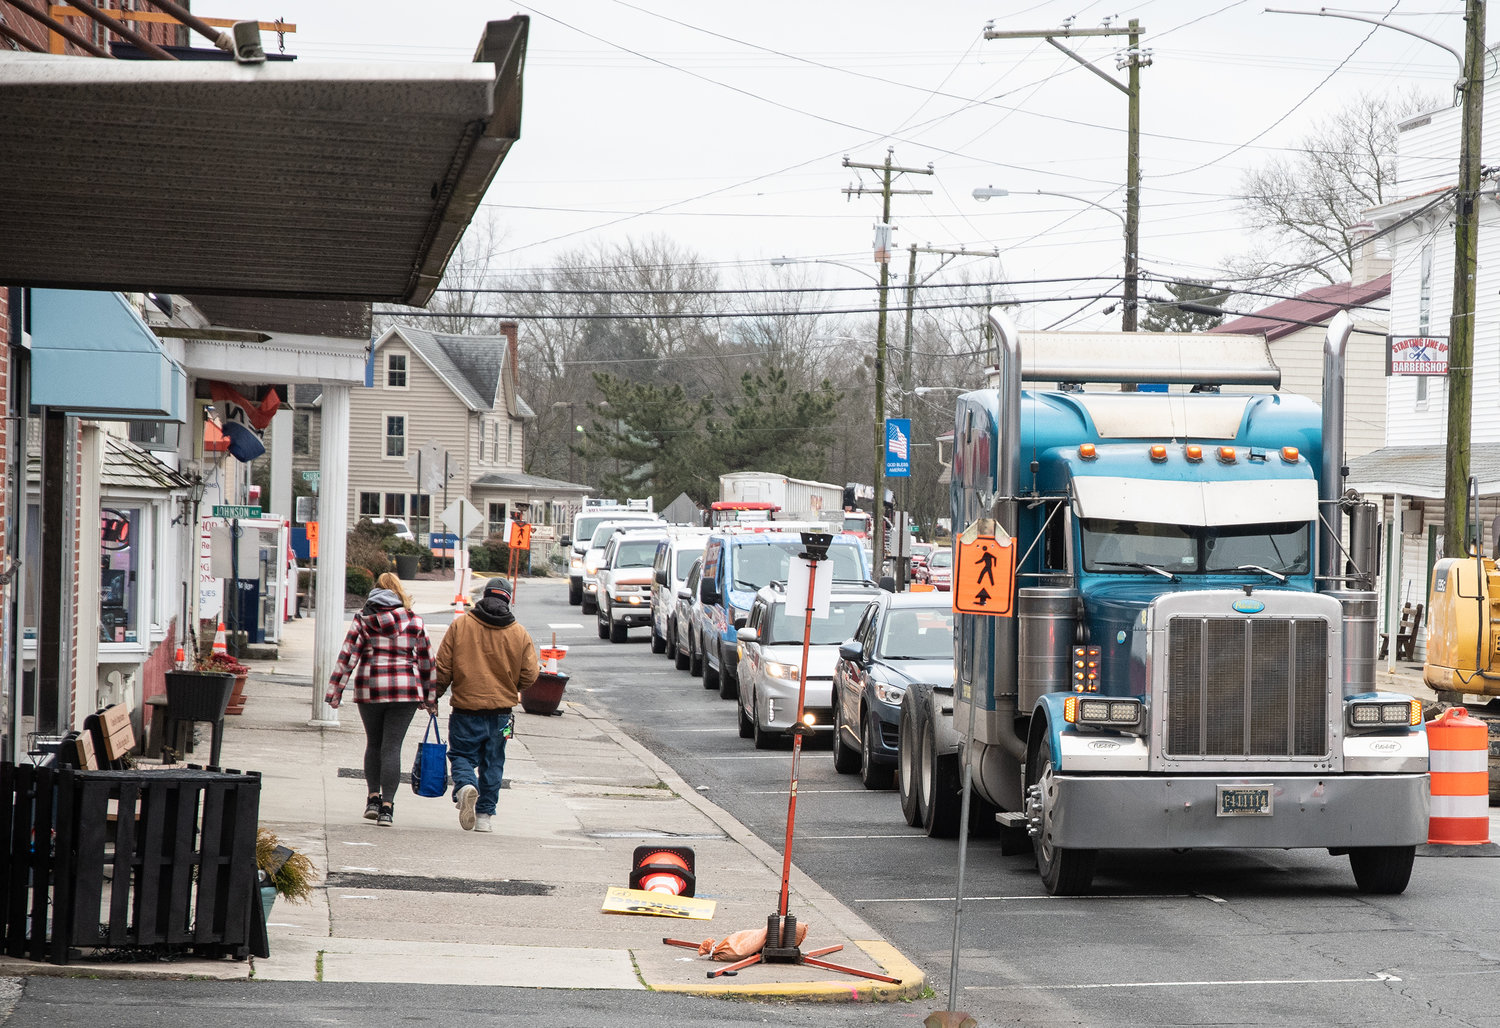 Traffic is backed up on Main Street during downtown road construction in Millsboro. Some businesses along the route report they are struggling, due to lack of parking.